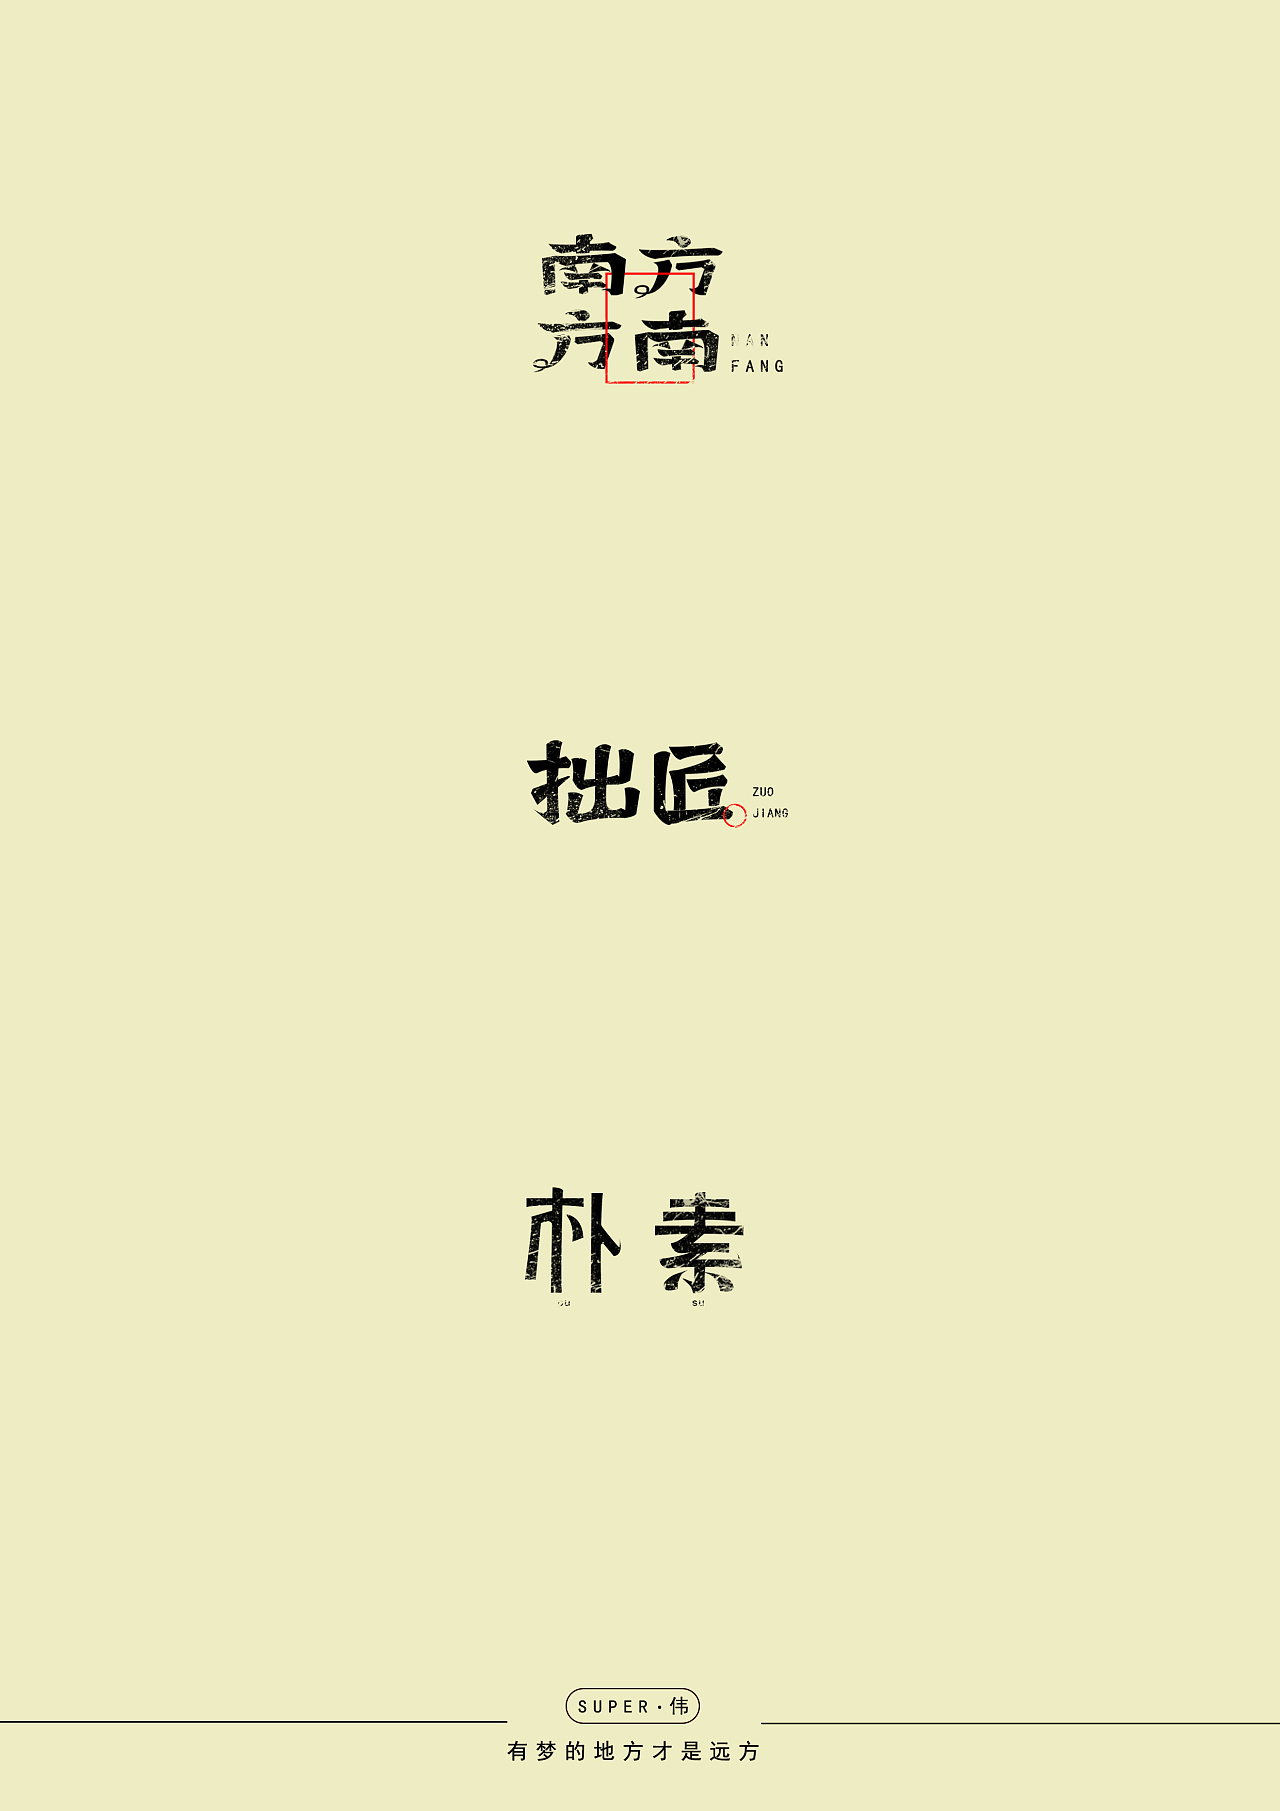 chinesefontdesign.com 2017 09 04 12 30 21 404328 20P The Chinese font design collection in August 2017